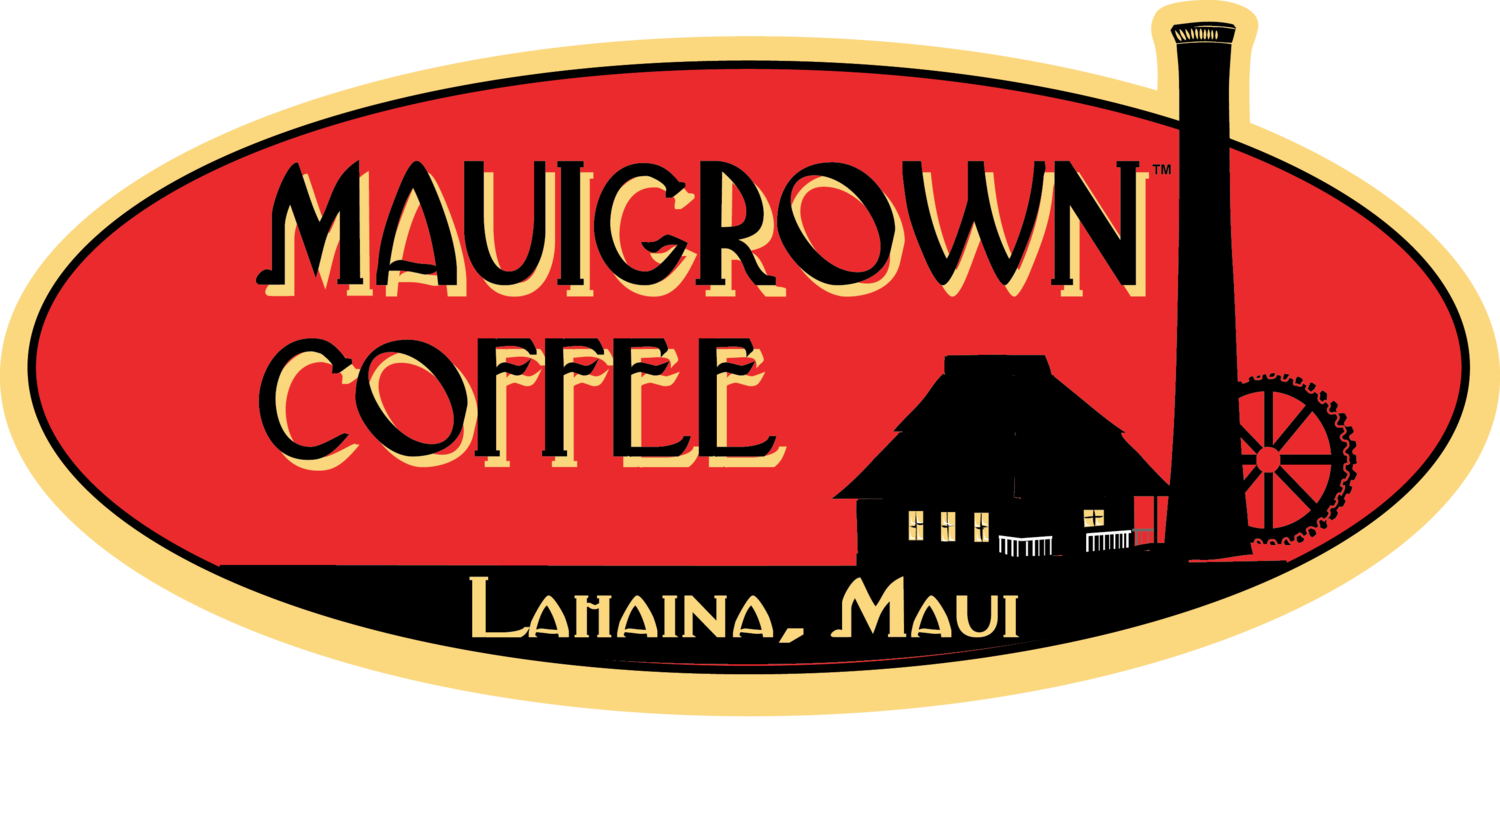 MauiGrown™ Coffee